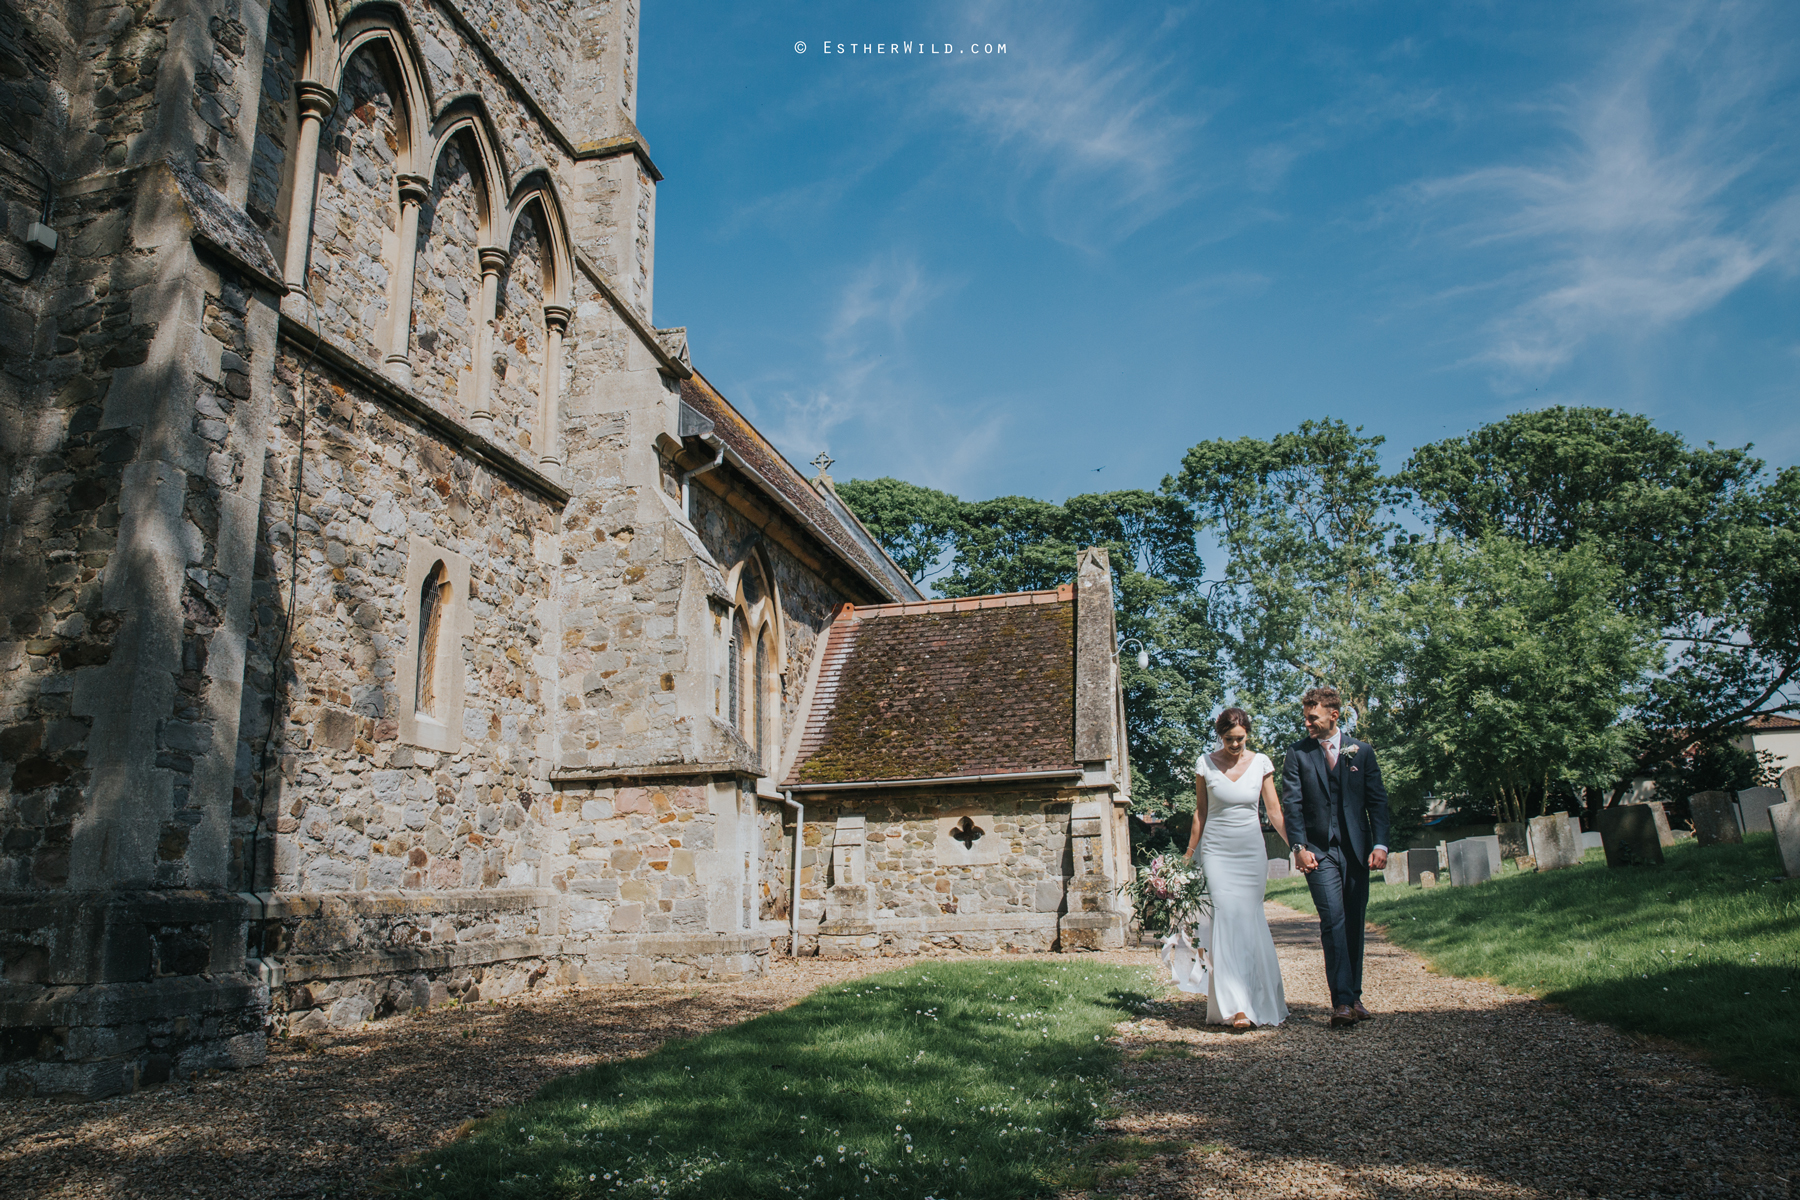 Wootton_Wedding_Copyright_Esther_Wild_Photographer_IMG_1479.jpg